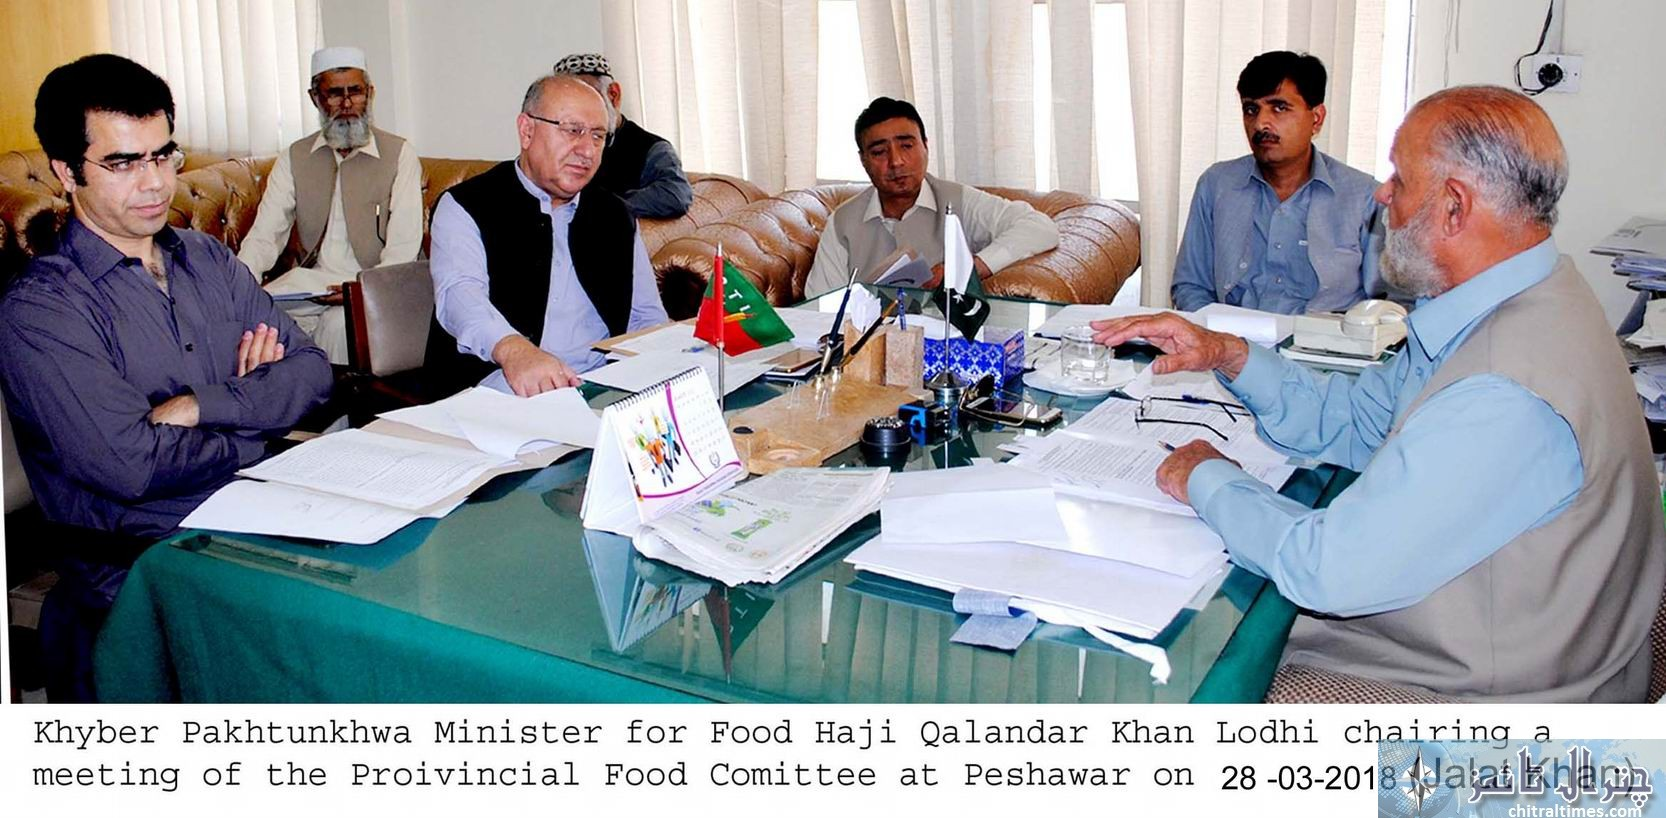 Minister for Food kp meeting